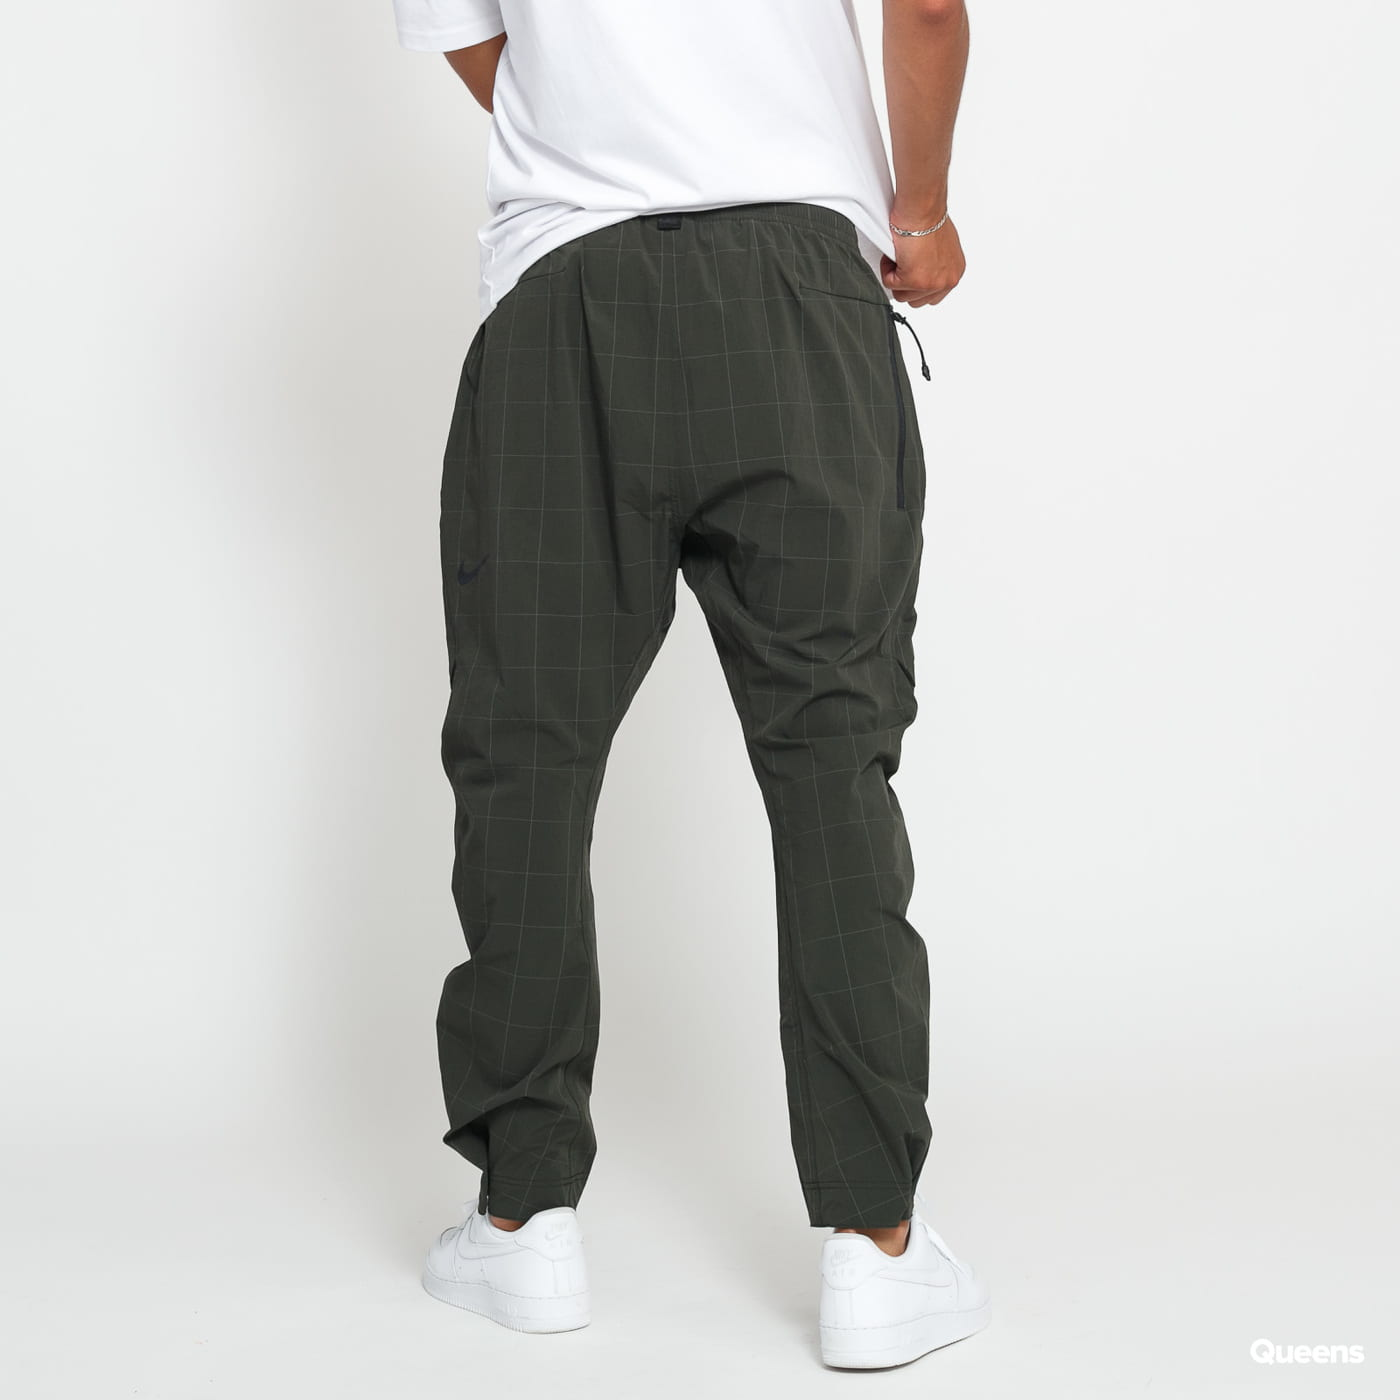 Nike M NSW Tech Pack Cargo Pant dunkeloliv